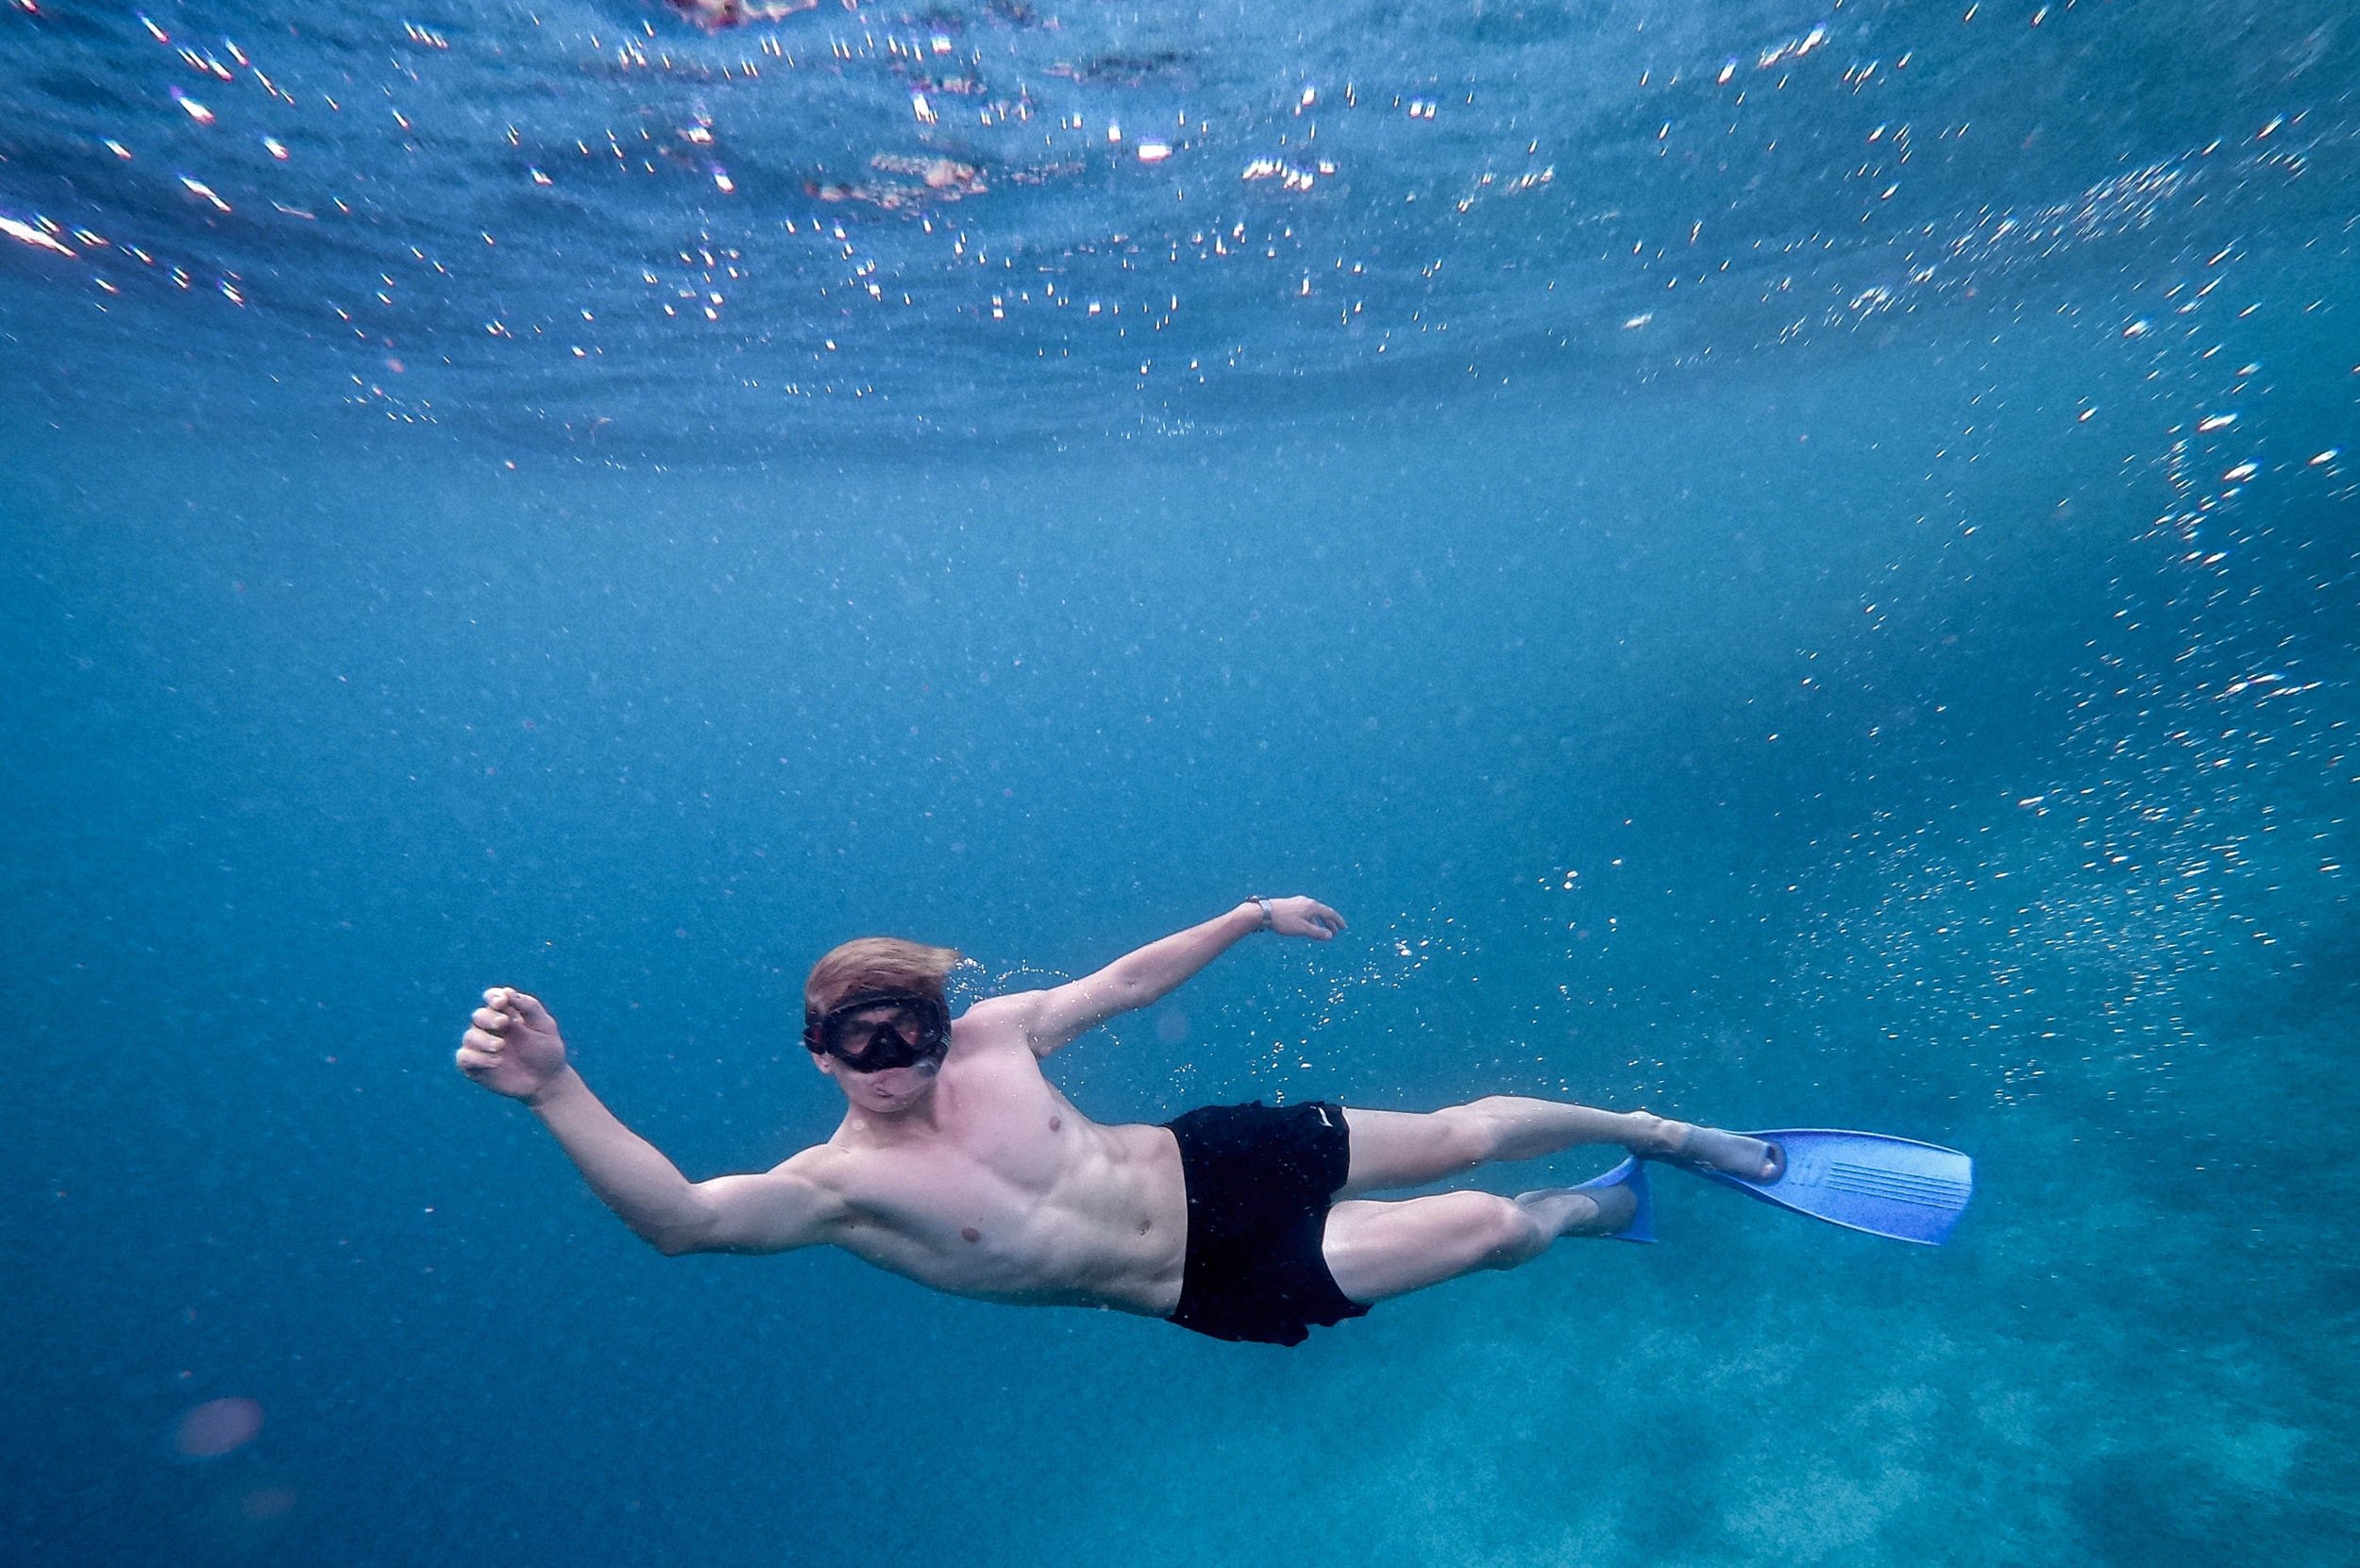 man swimming underwater in blue calm water topless with flippers